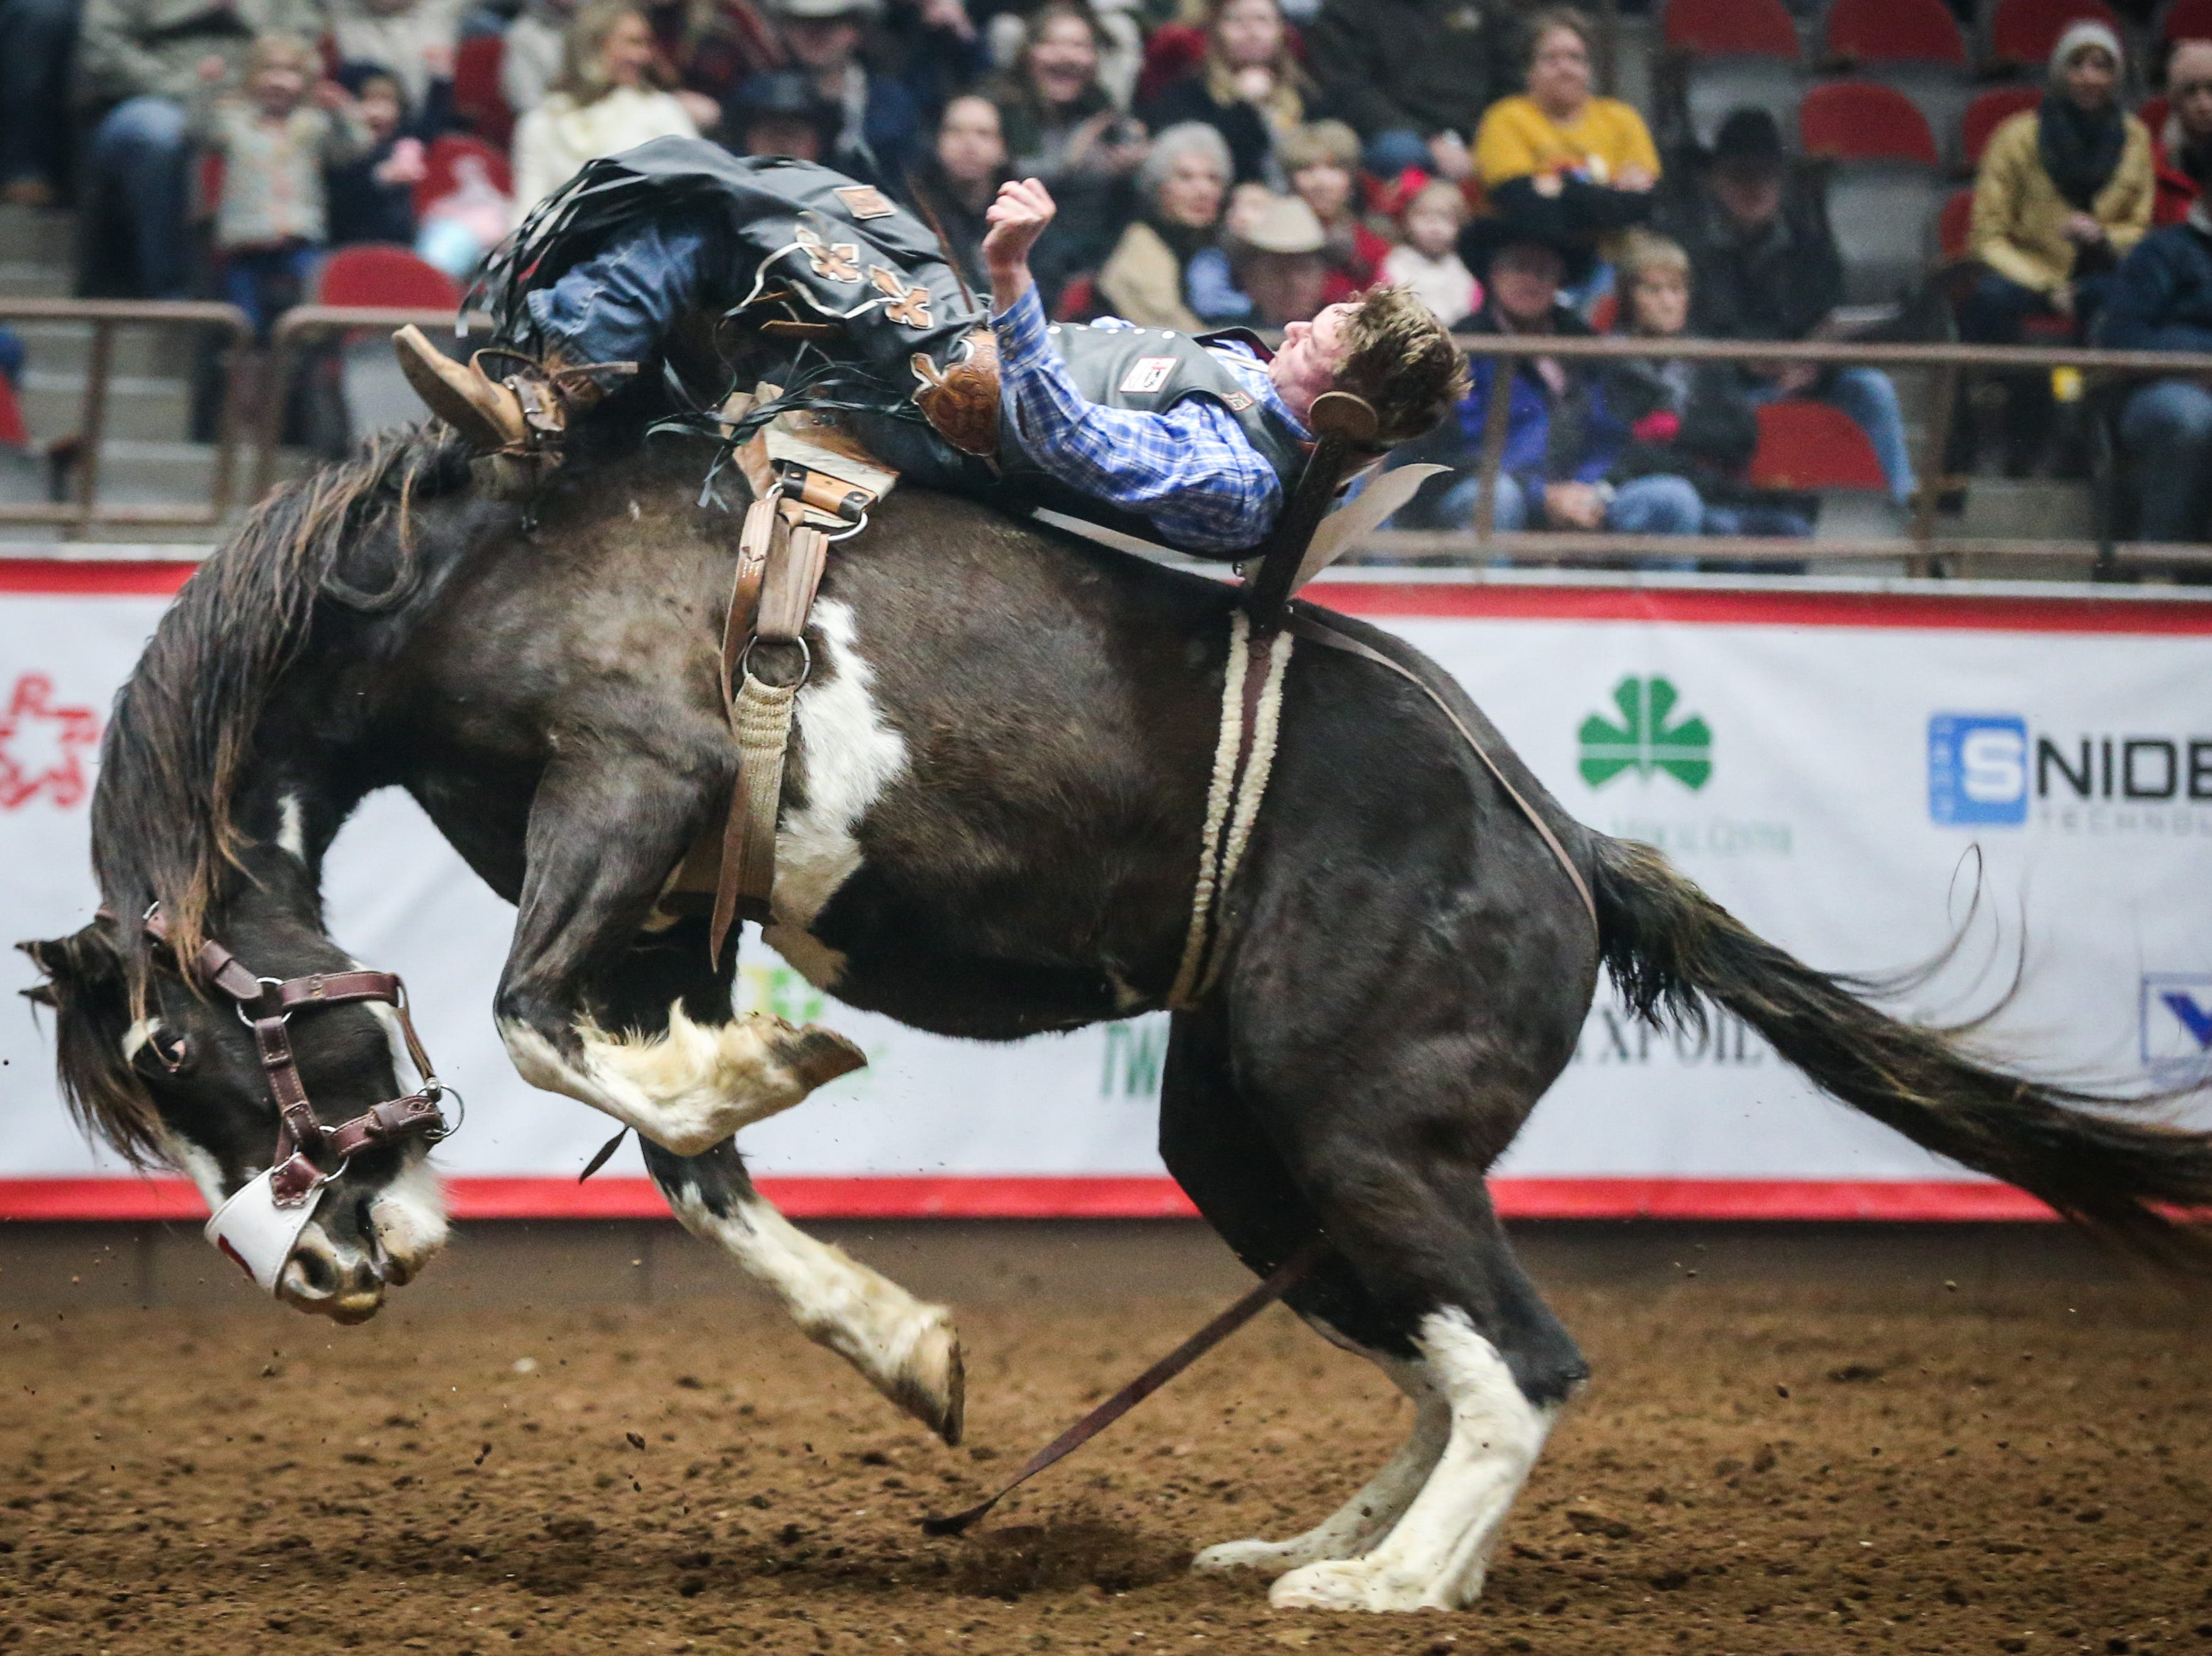 Mark Kreder rides bareback on Sweetwater during the San Angelo Stock Show & Rodeo matinee show Saturday, Feb. 9, 2019, at Foster Communications Coliseum.